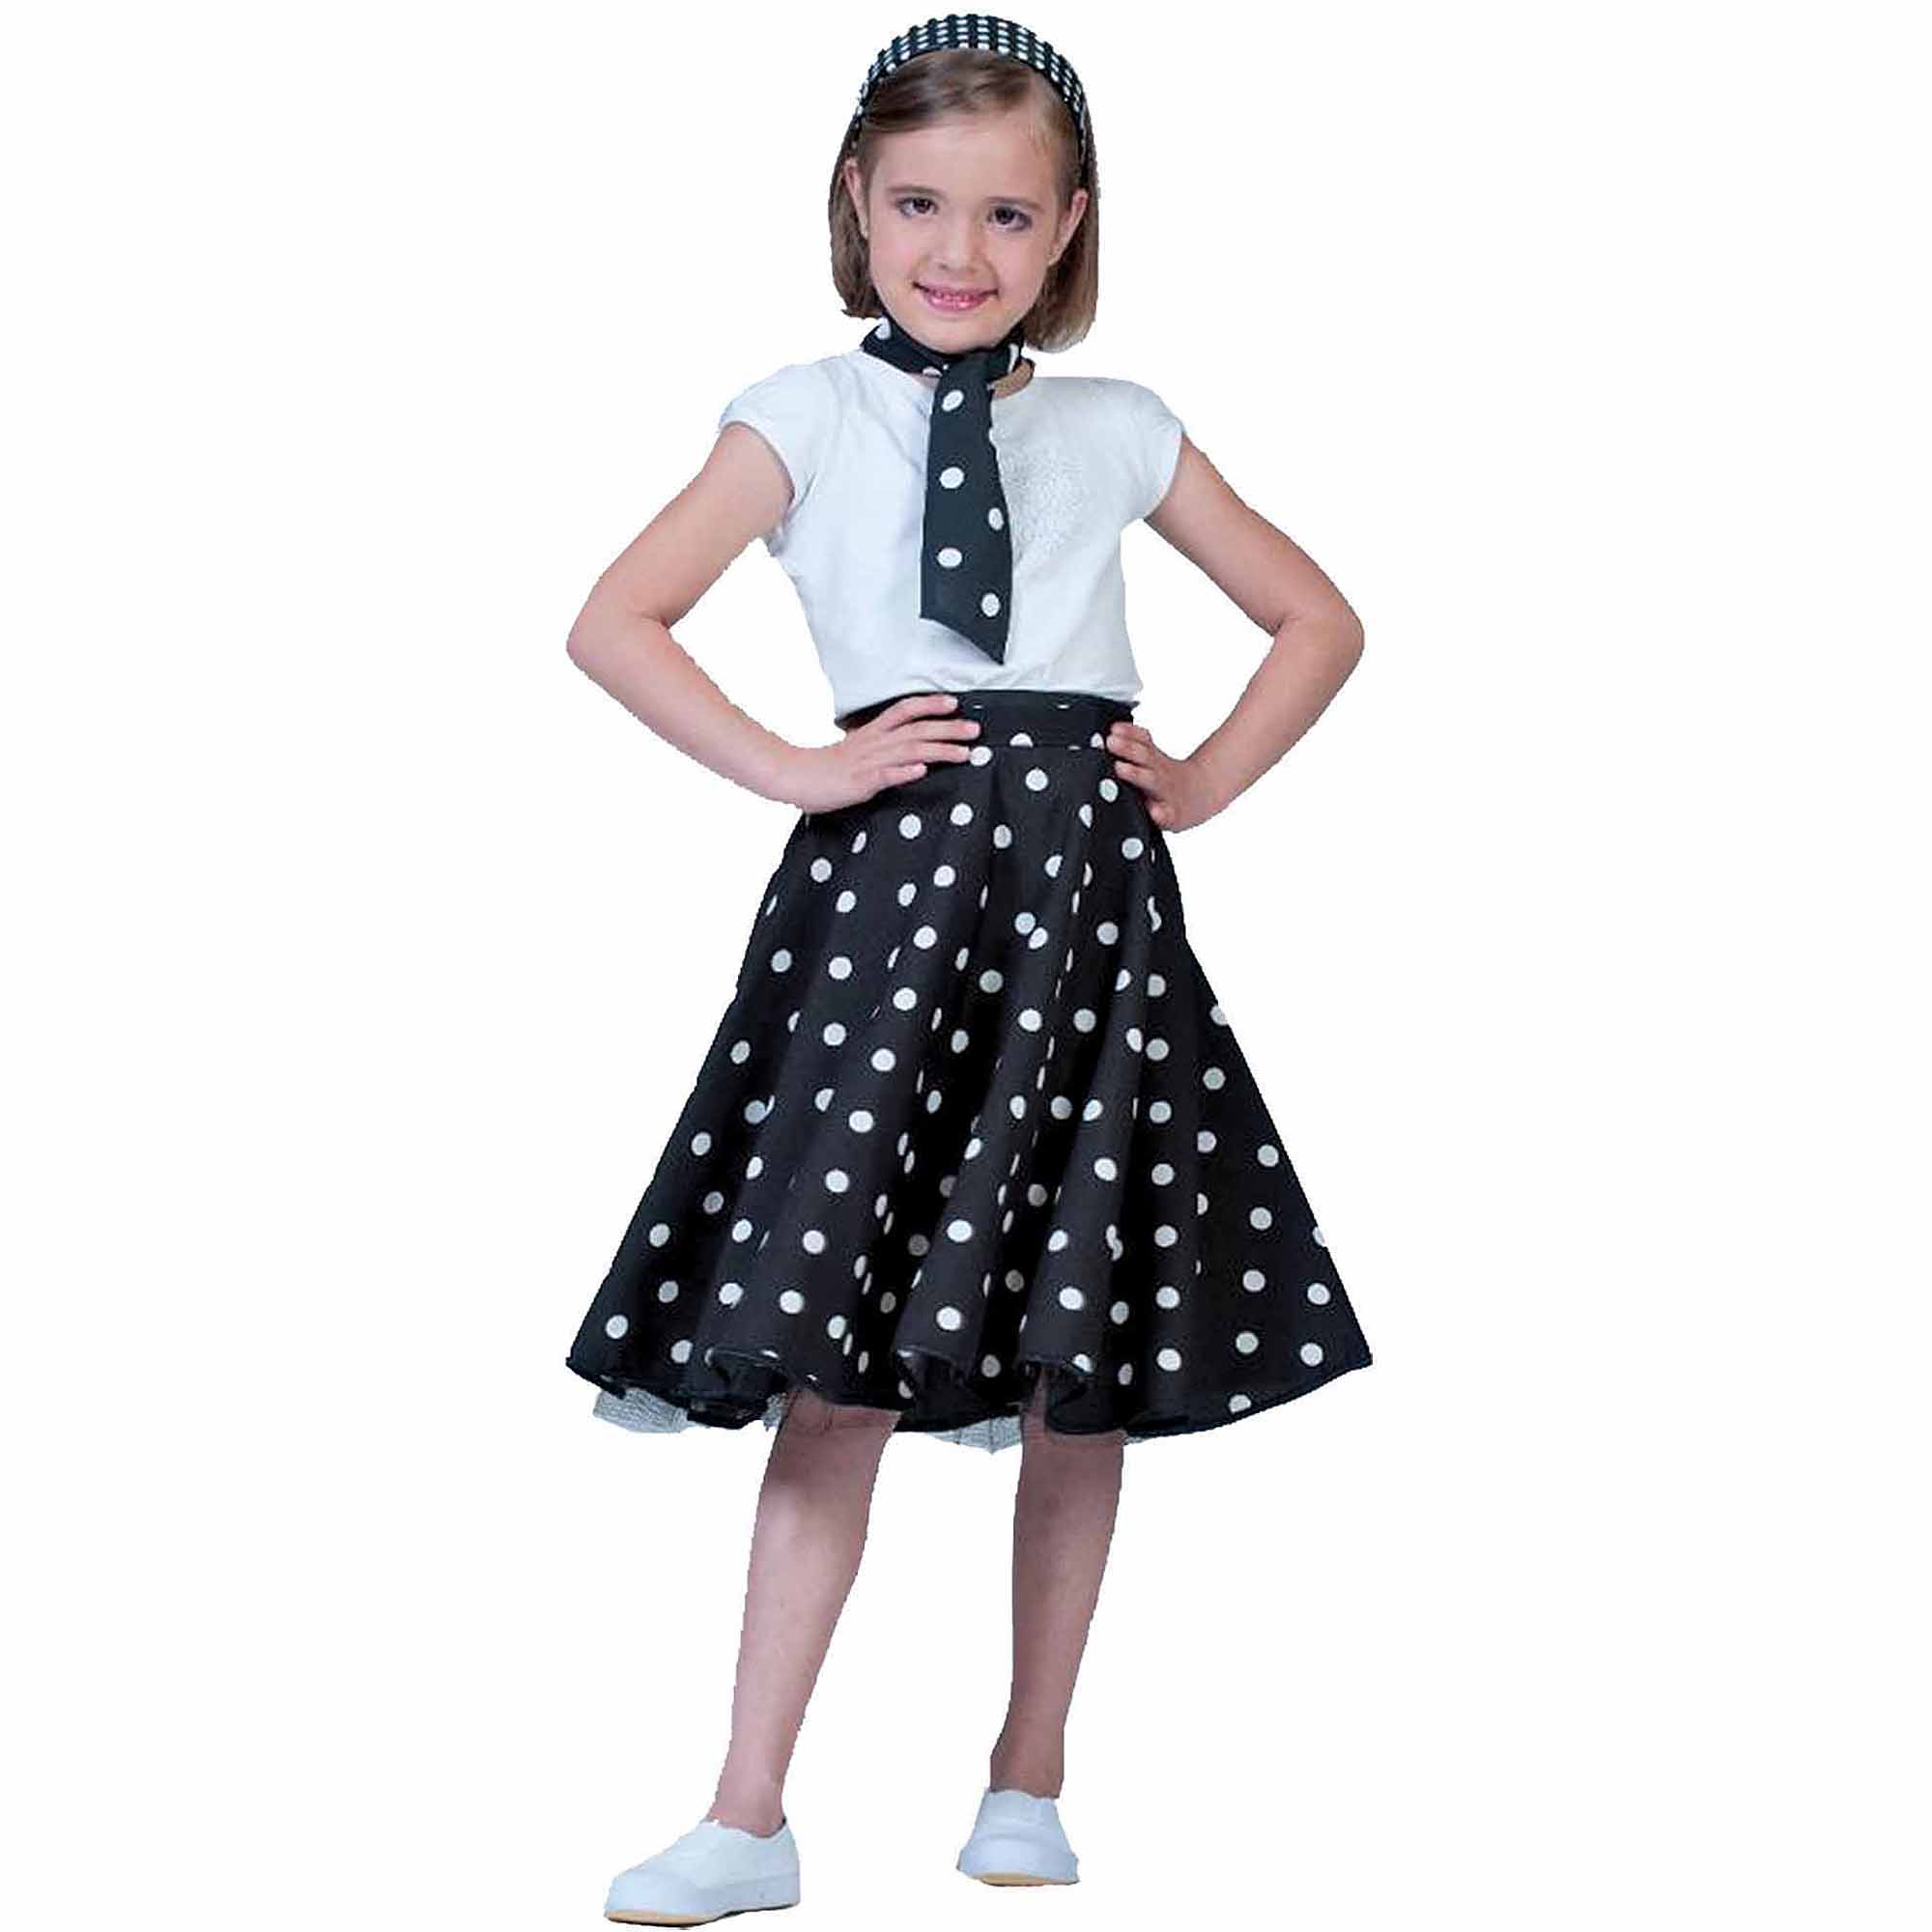 Black Sock Hop Skirt Child Girl Halloween Costume